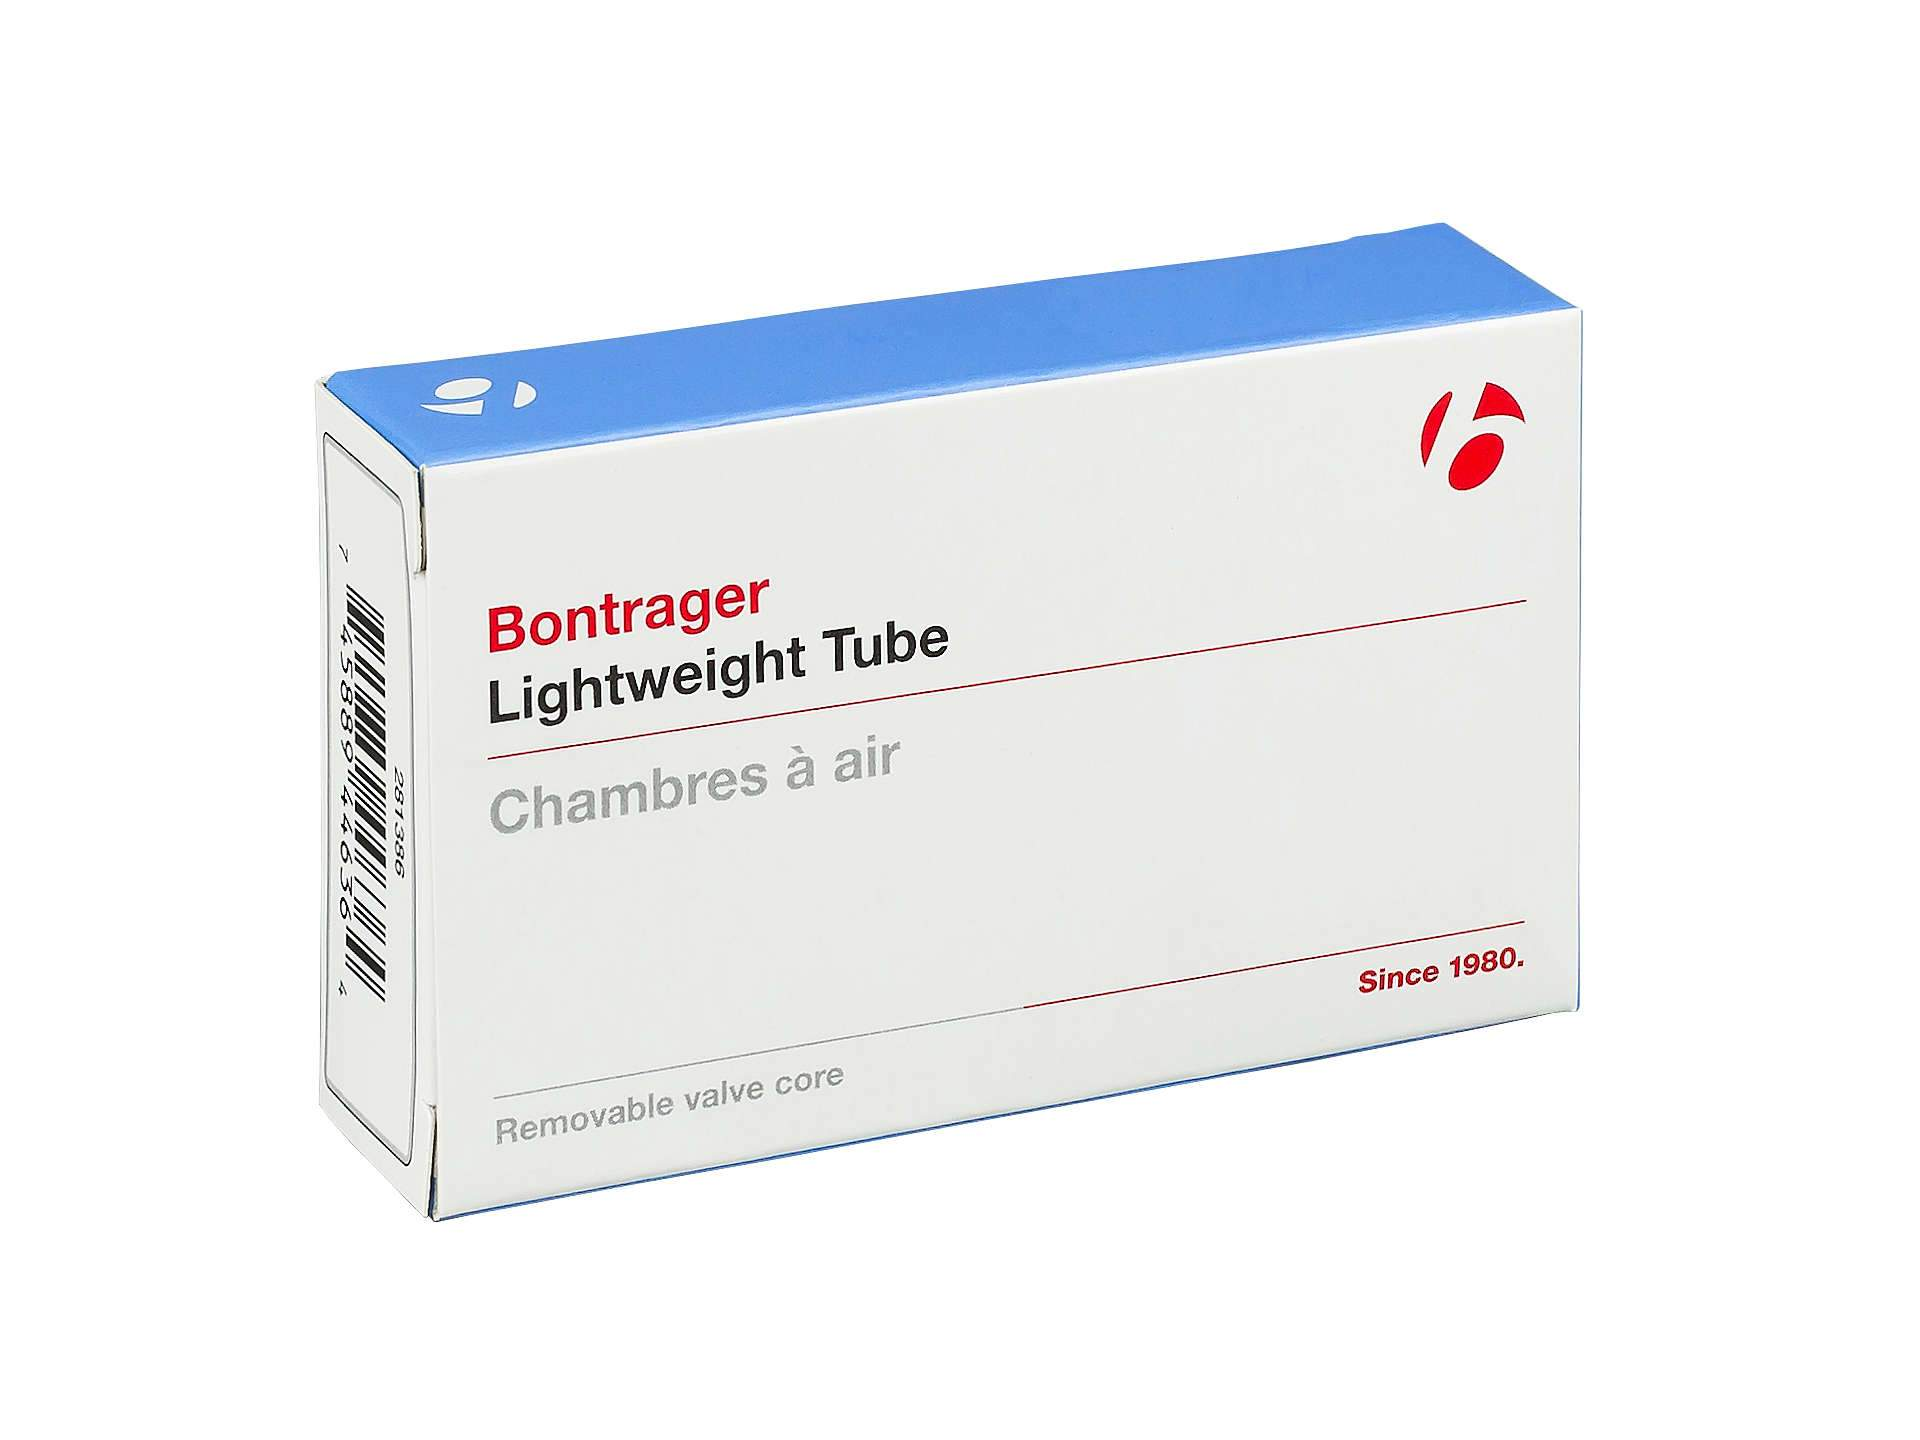 Bontrager Lightweight Bicycle Tubes